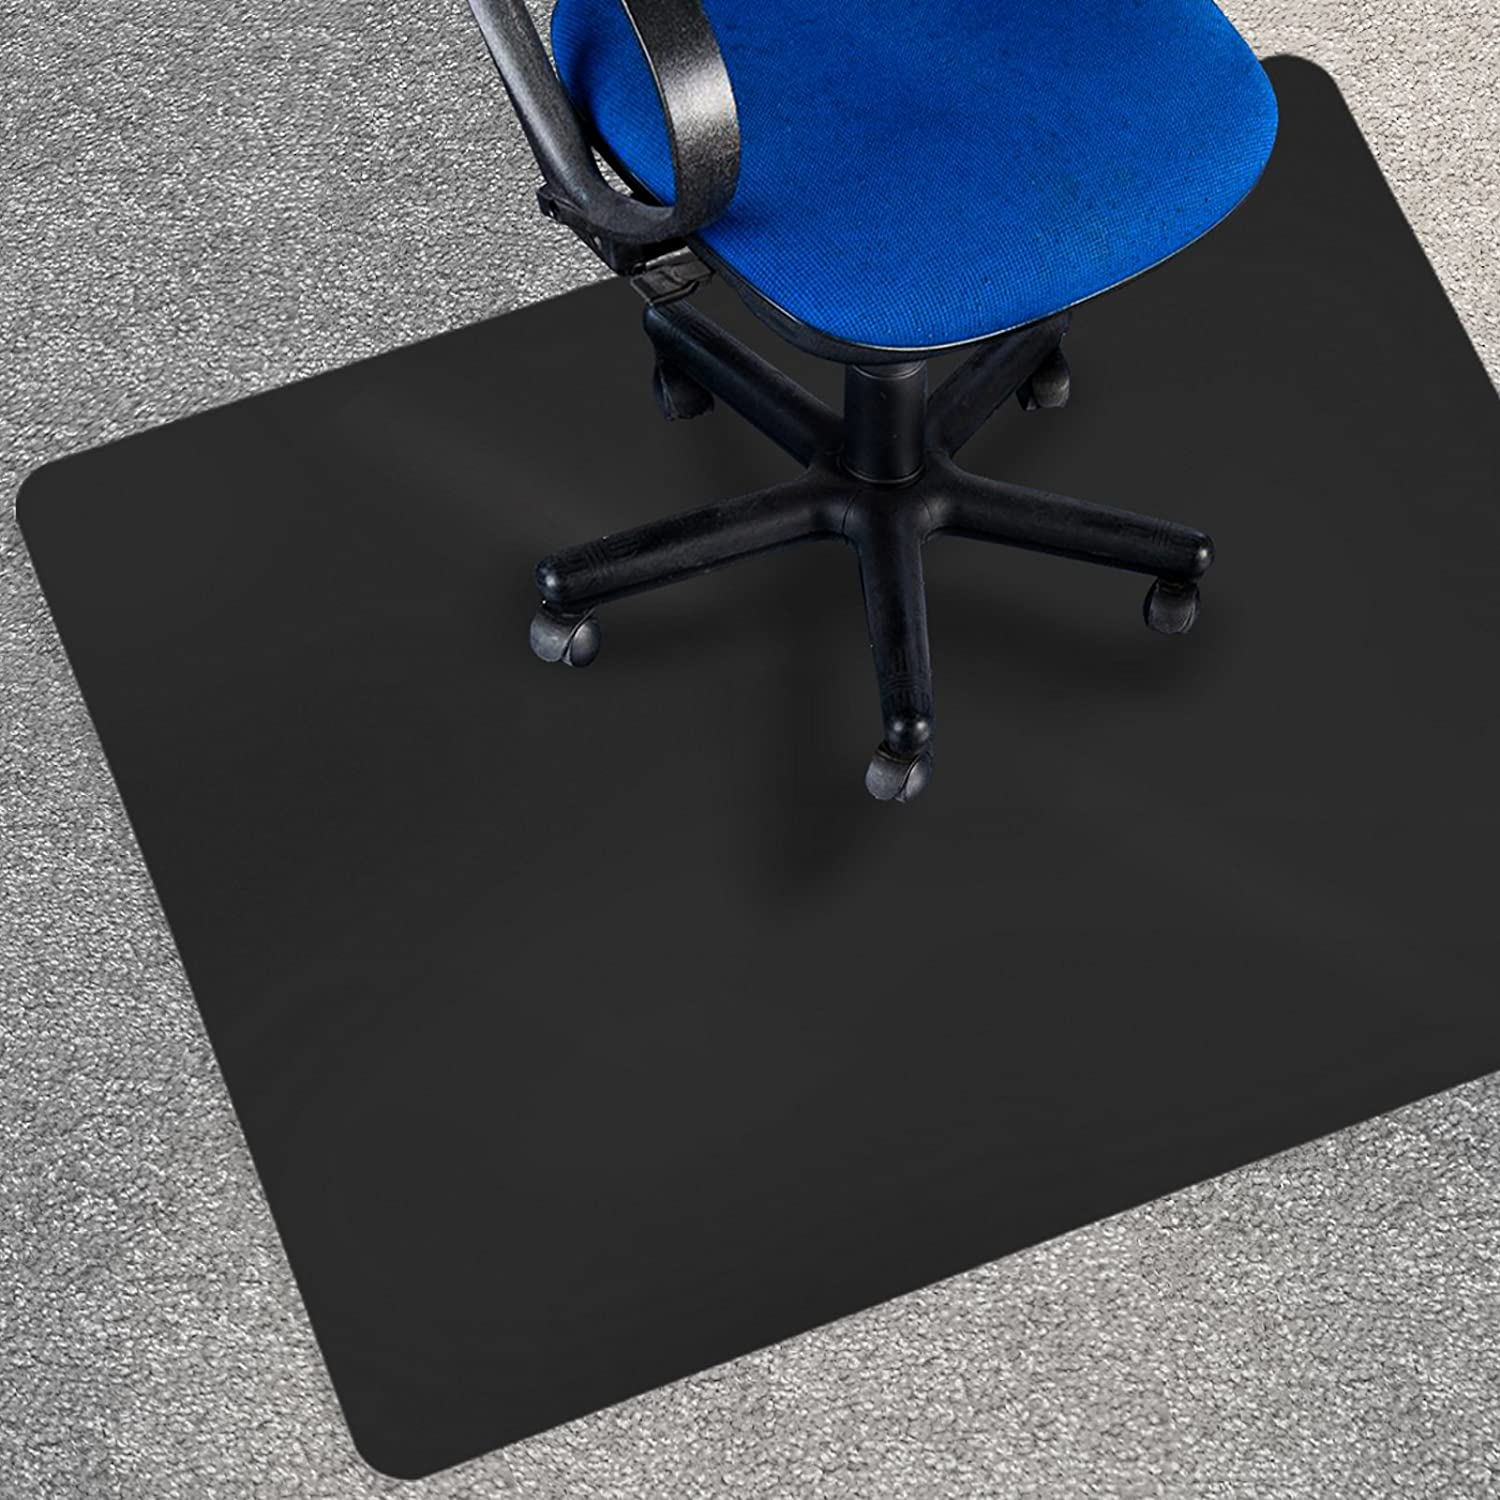 for affordable chair office new mat carpet plastic protector furniture